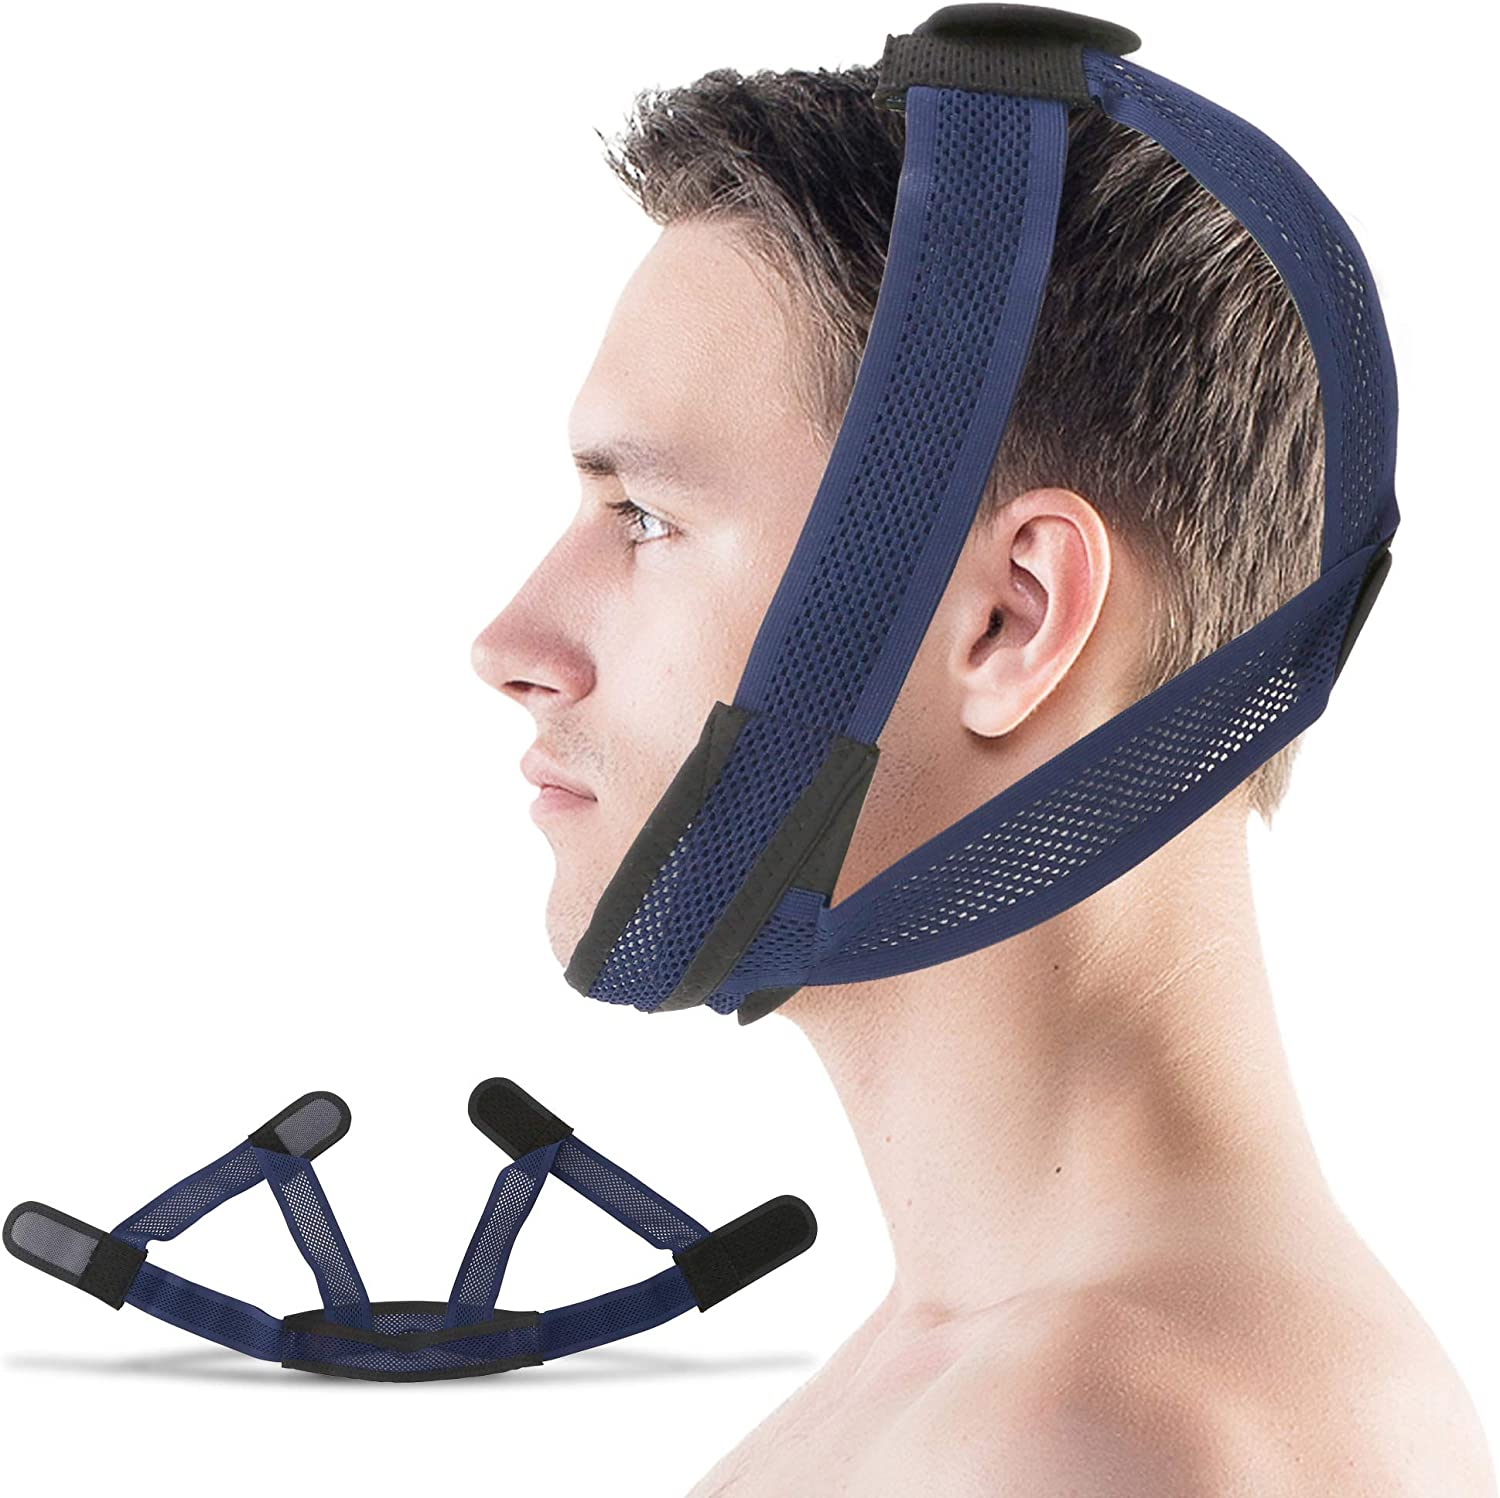 Supotto Belt Chin Strap for Mouth Breather L size| Portable Anti-Snore Sleeping Device | Sleep Care & Snoring Accessories | Quiet Breathing & Jaw Aid Equipment: Health & Personal Care